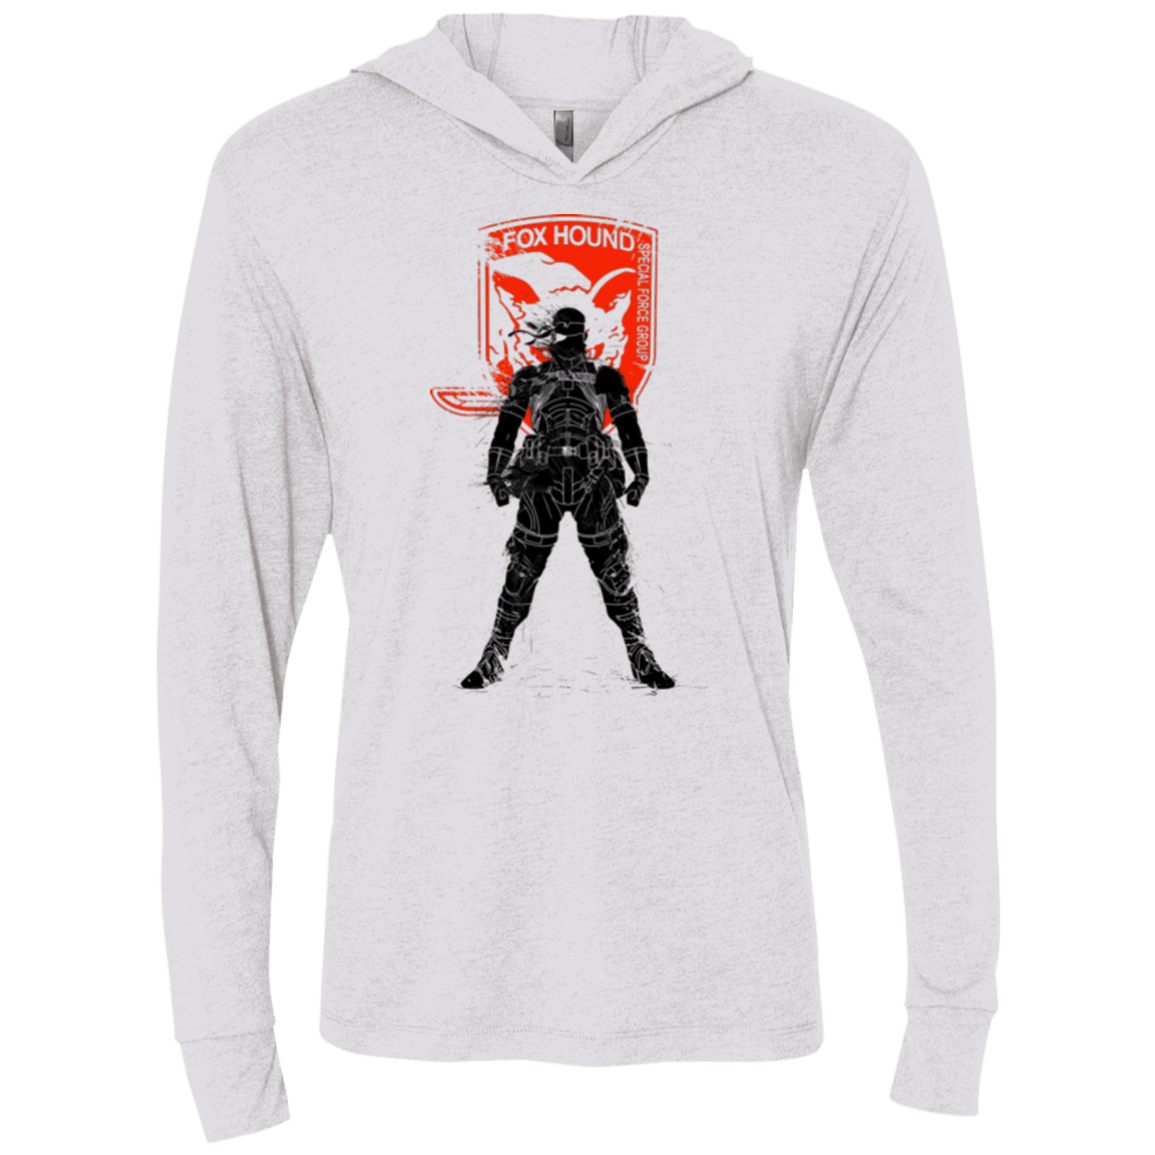 T-Shirts Heather White / X-Small Fox Hound (1) Triblend Long Sleeve Hoodie Tee